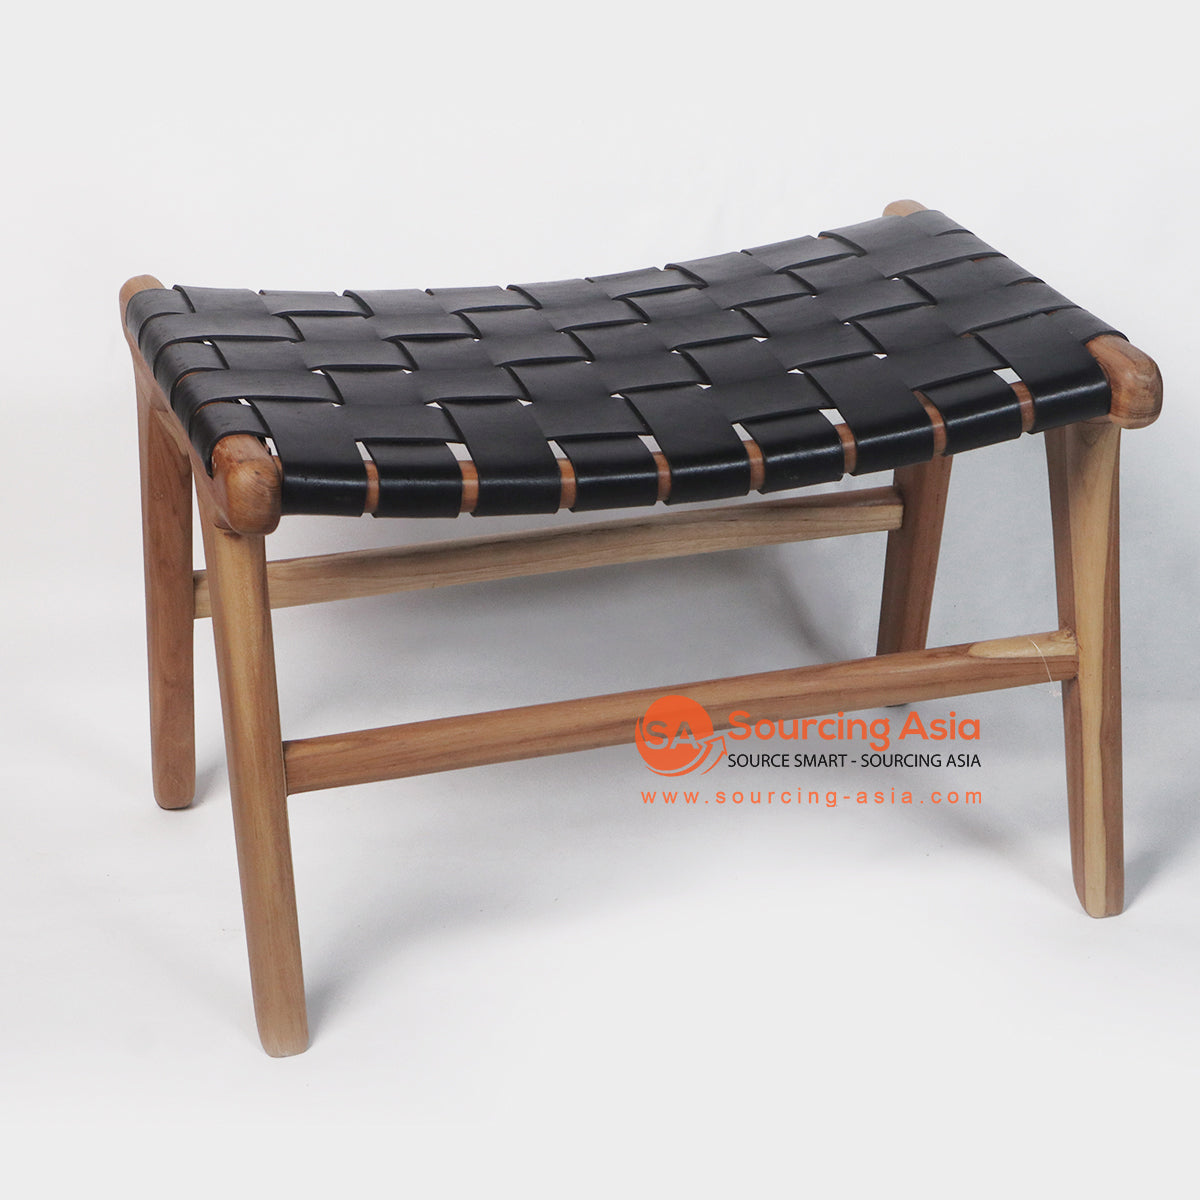 IJF020 STOOL WITH WOVEN BLACK LEATHER